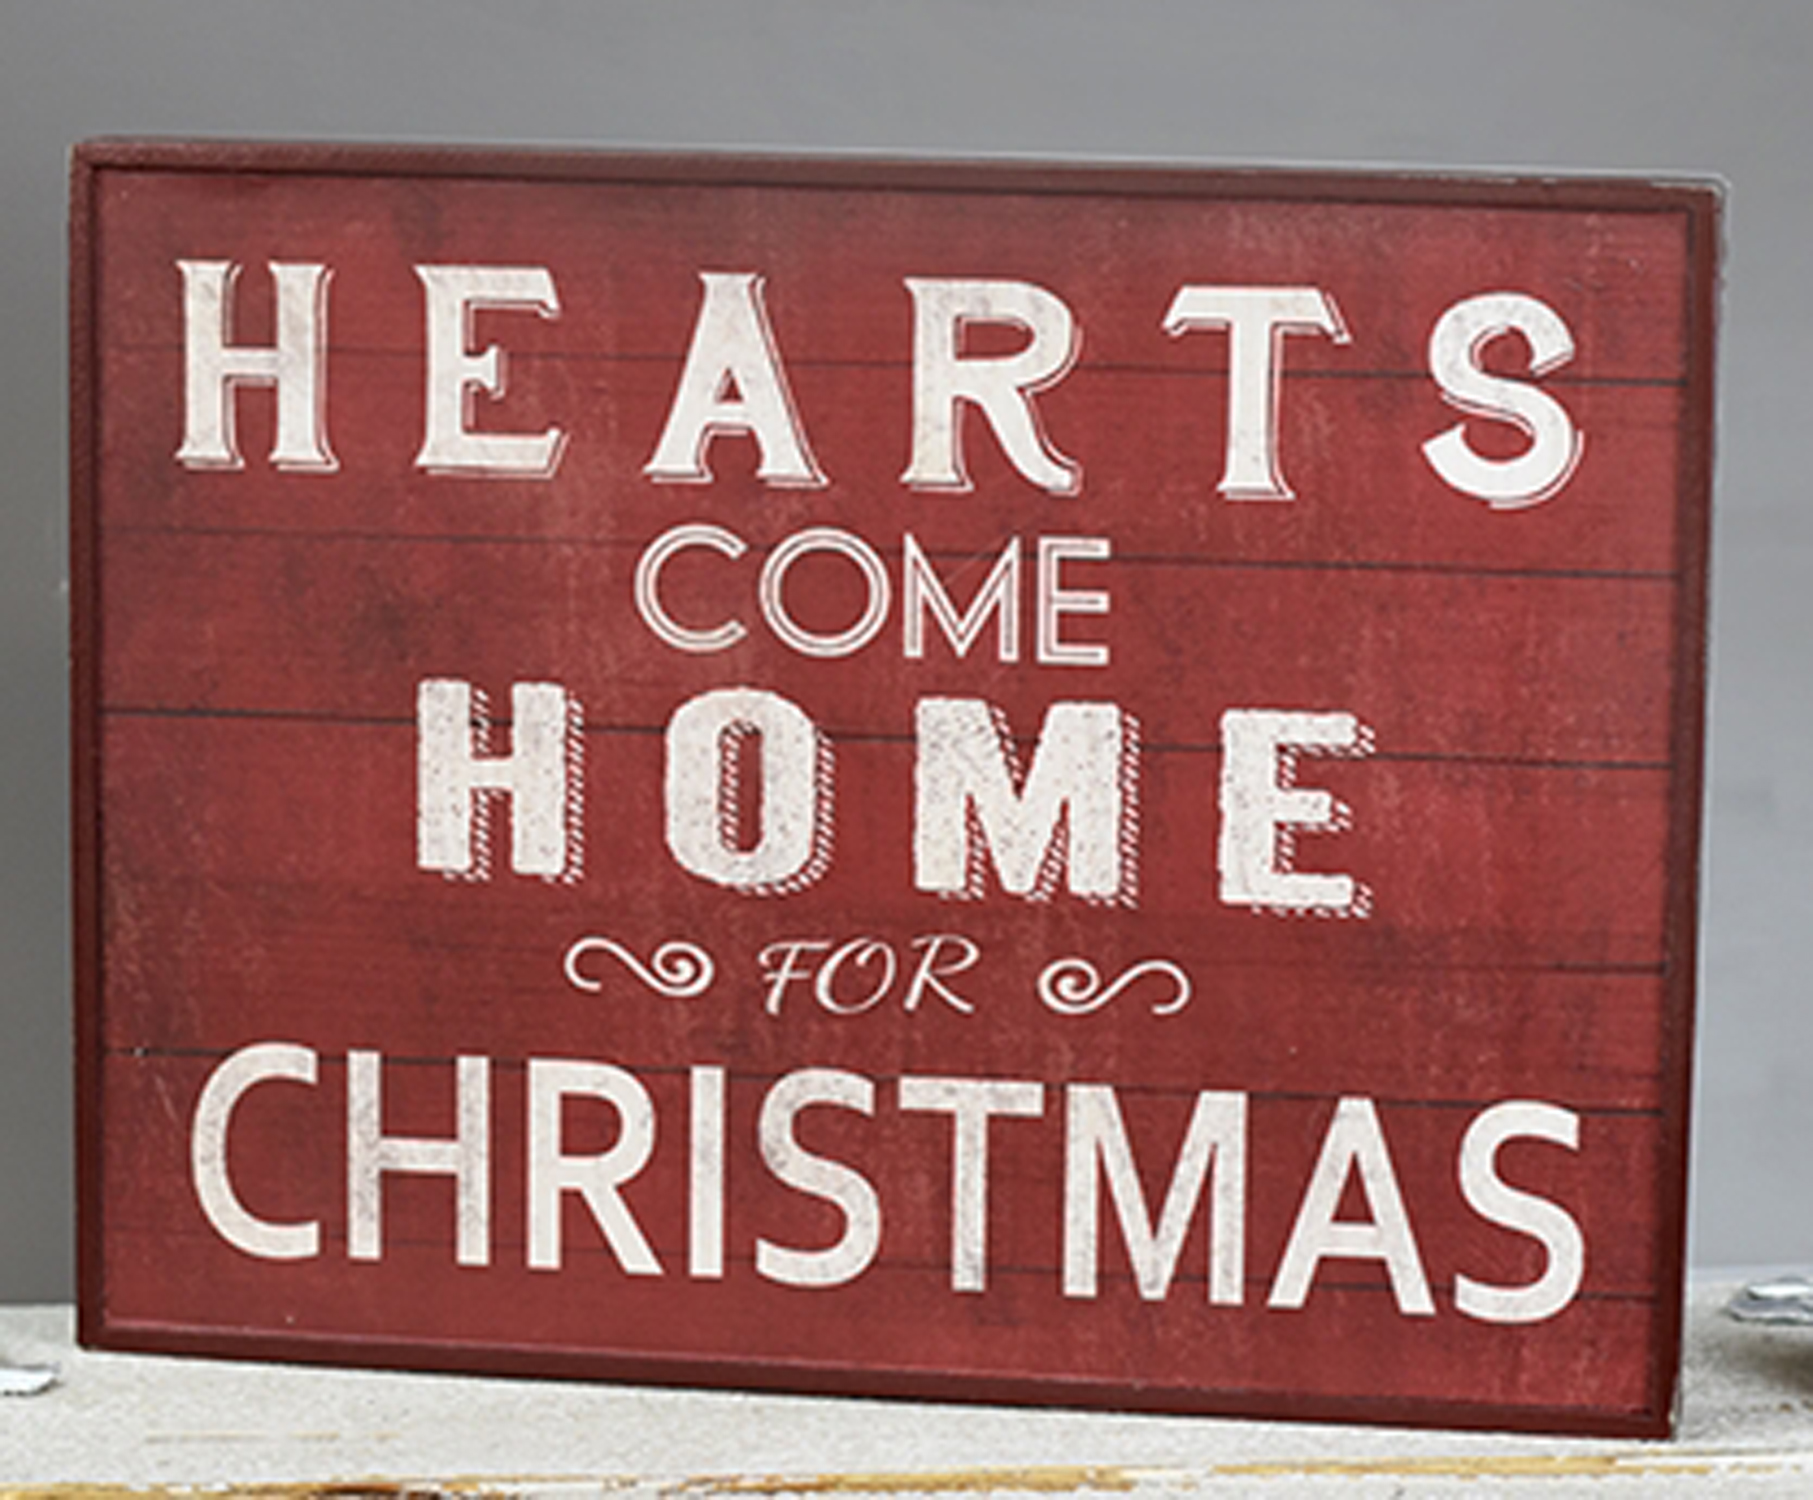 Come Home For Christmas.Details About Hearts Come Home For Christmas Wood Sign Holiday Home Decor 13 X 16